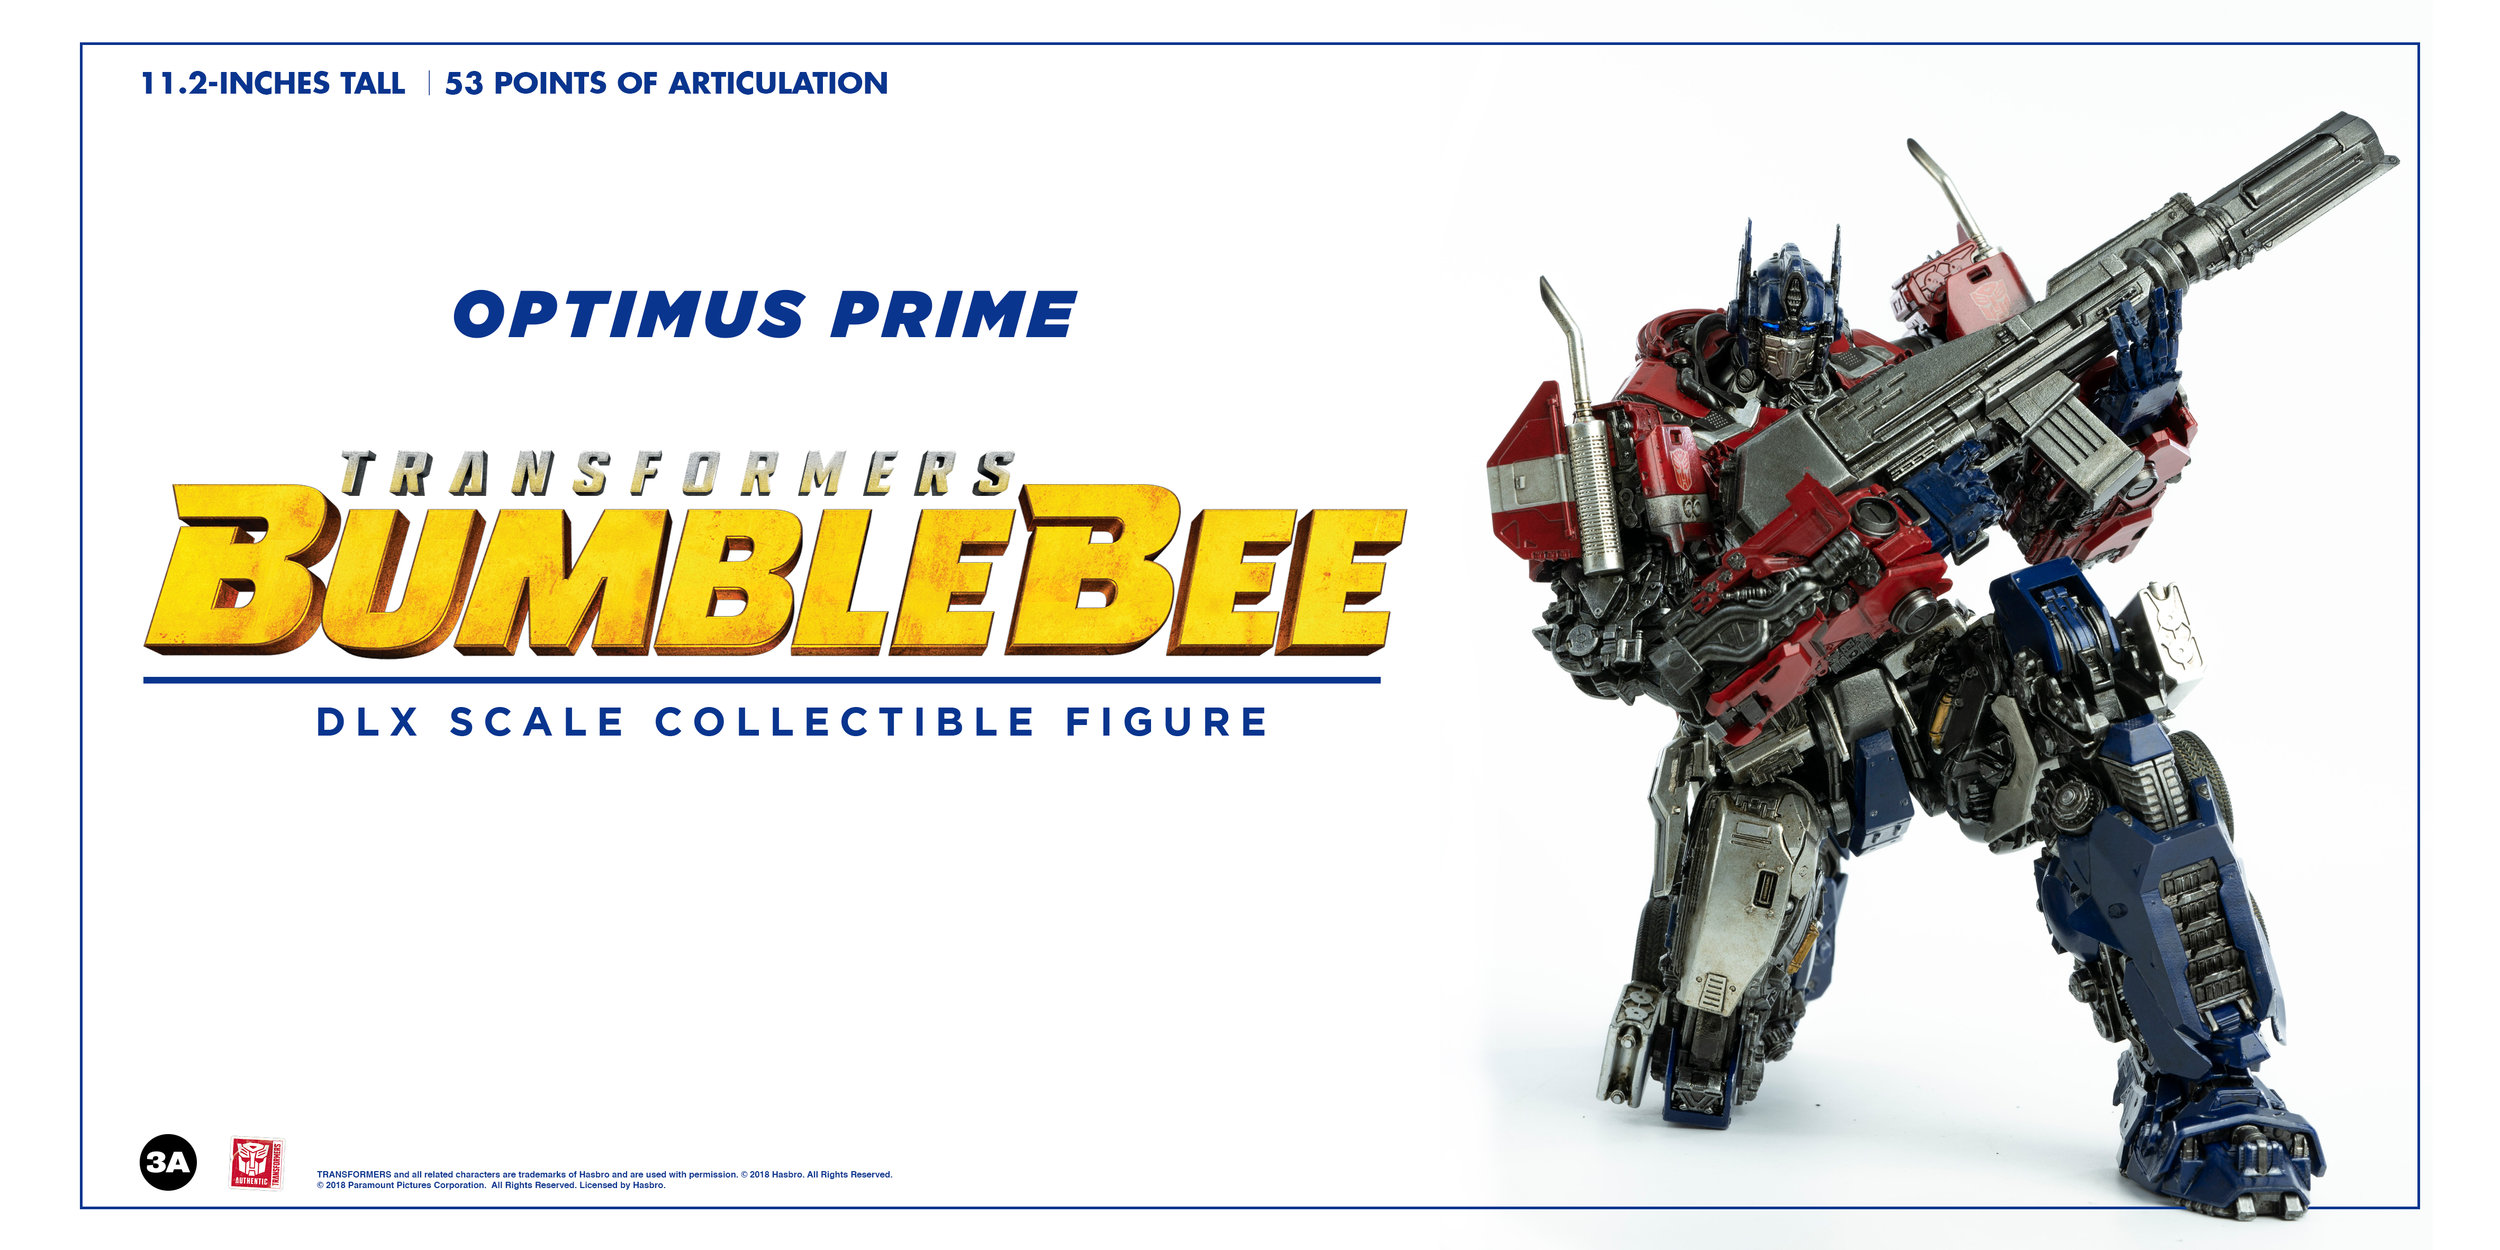 Transformers Bumblebee DLX and Premium Scale Collectible Figures  - Page 2 OP_DLX_ENG_5964_wide